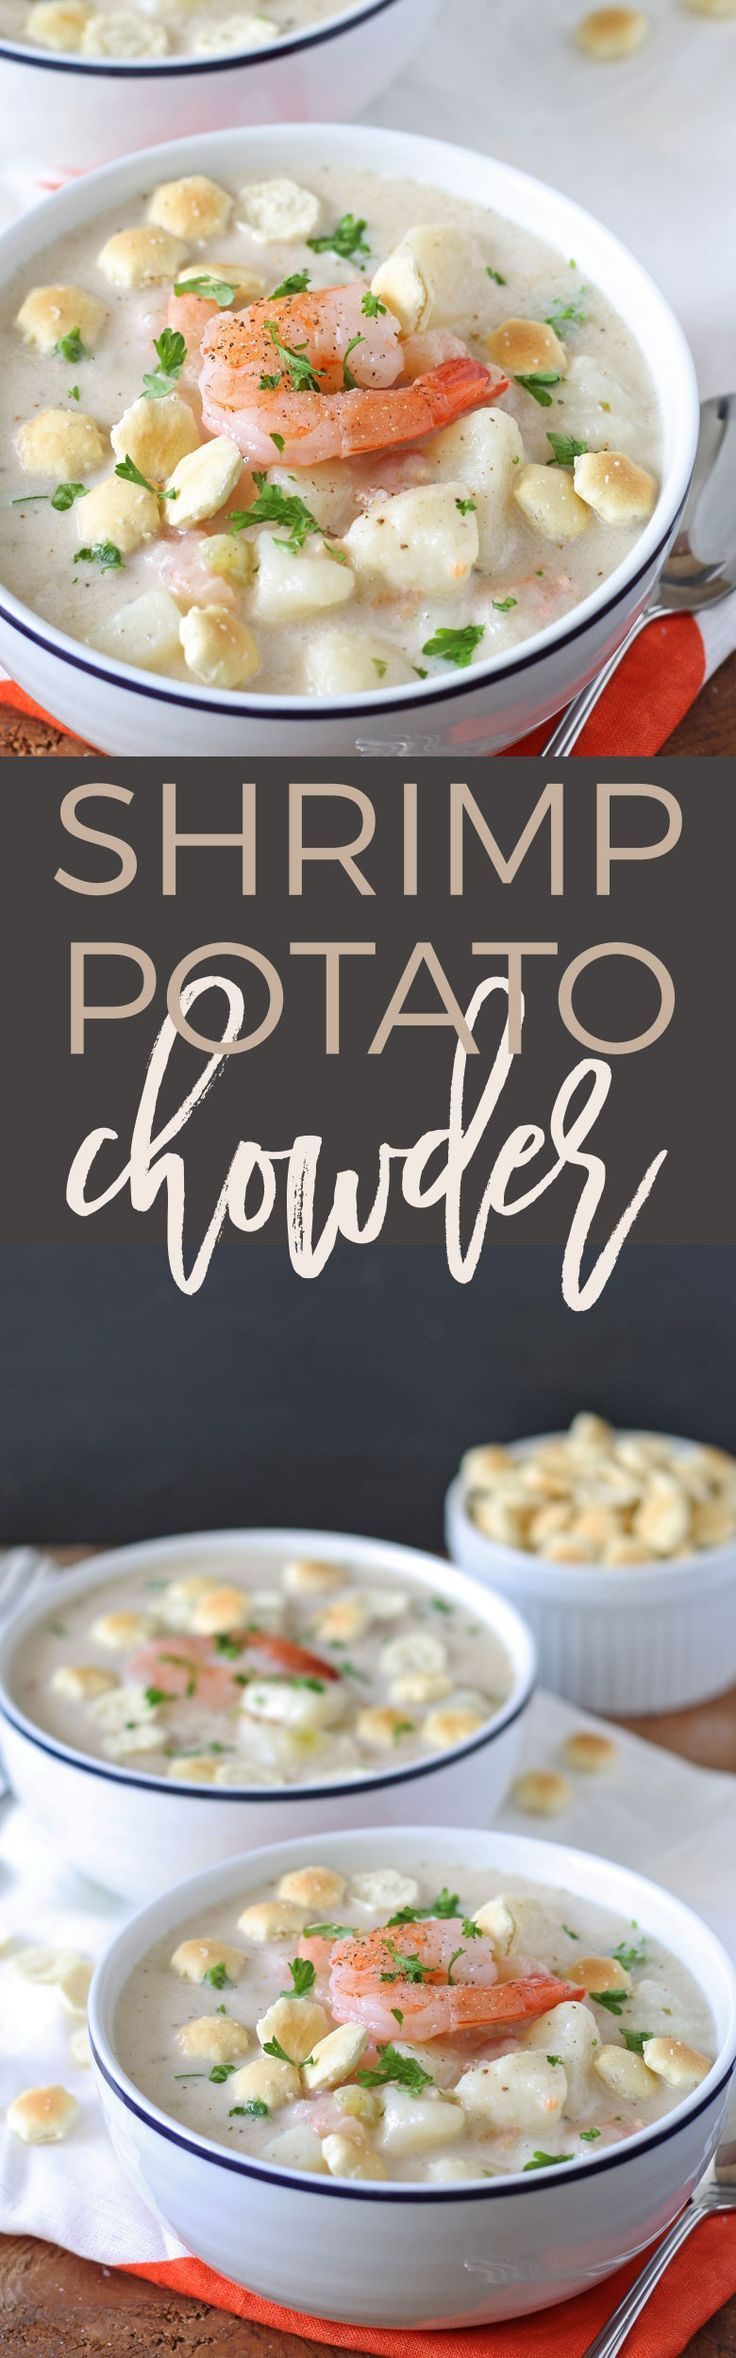 If you're looking for a new winter soup, try this shrimp potato chowder recipe! It's easy to make and delicious - serve it in a bread bowl! | honeyandbirch.com | winter | recipe | recipes | easy | best | favorite | soup | chowder | stew | bread bowl | recipe | recipes | creamy | quick | seafood